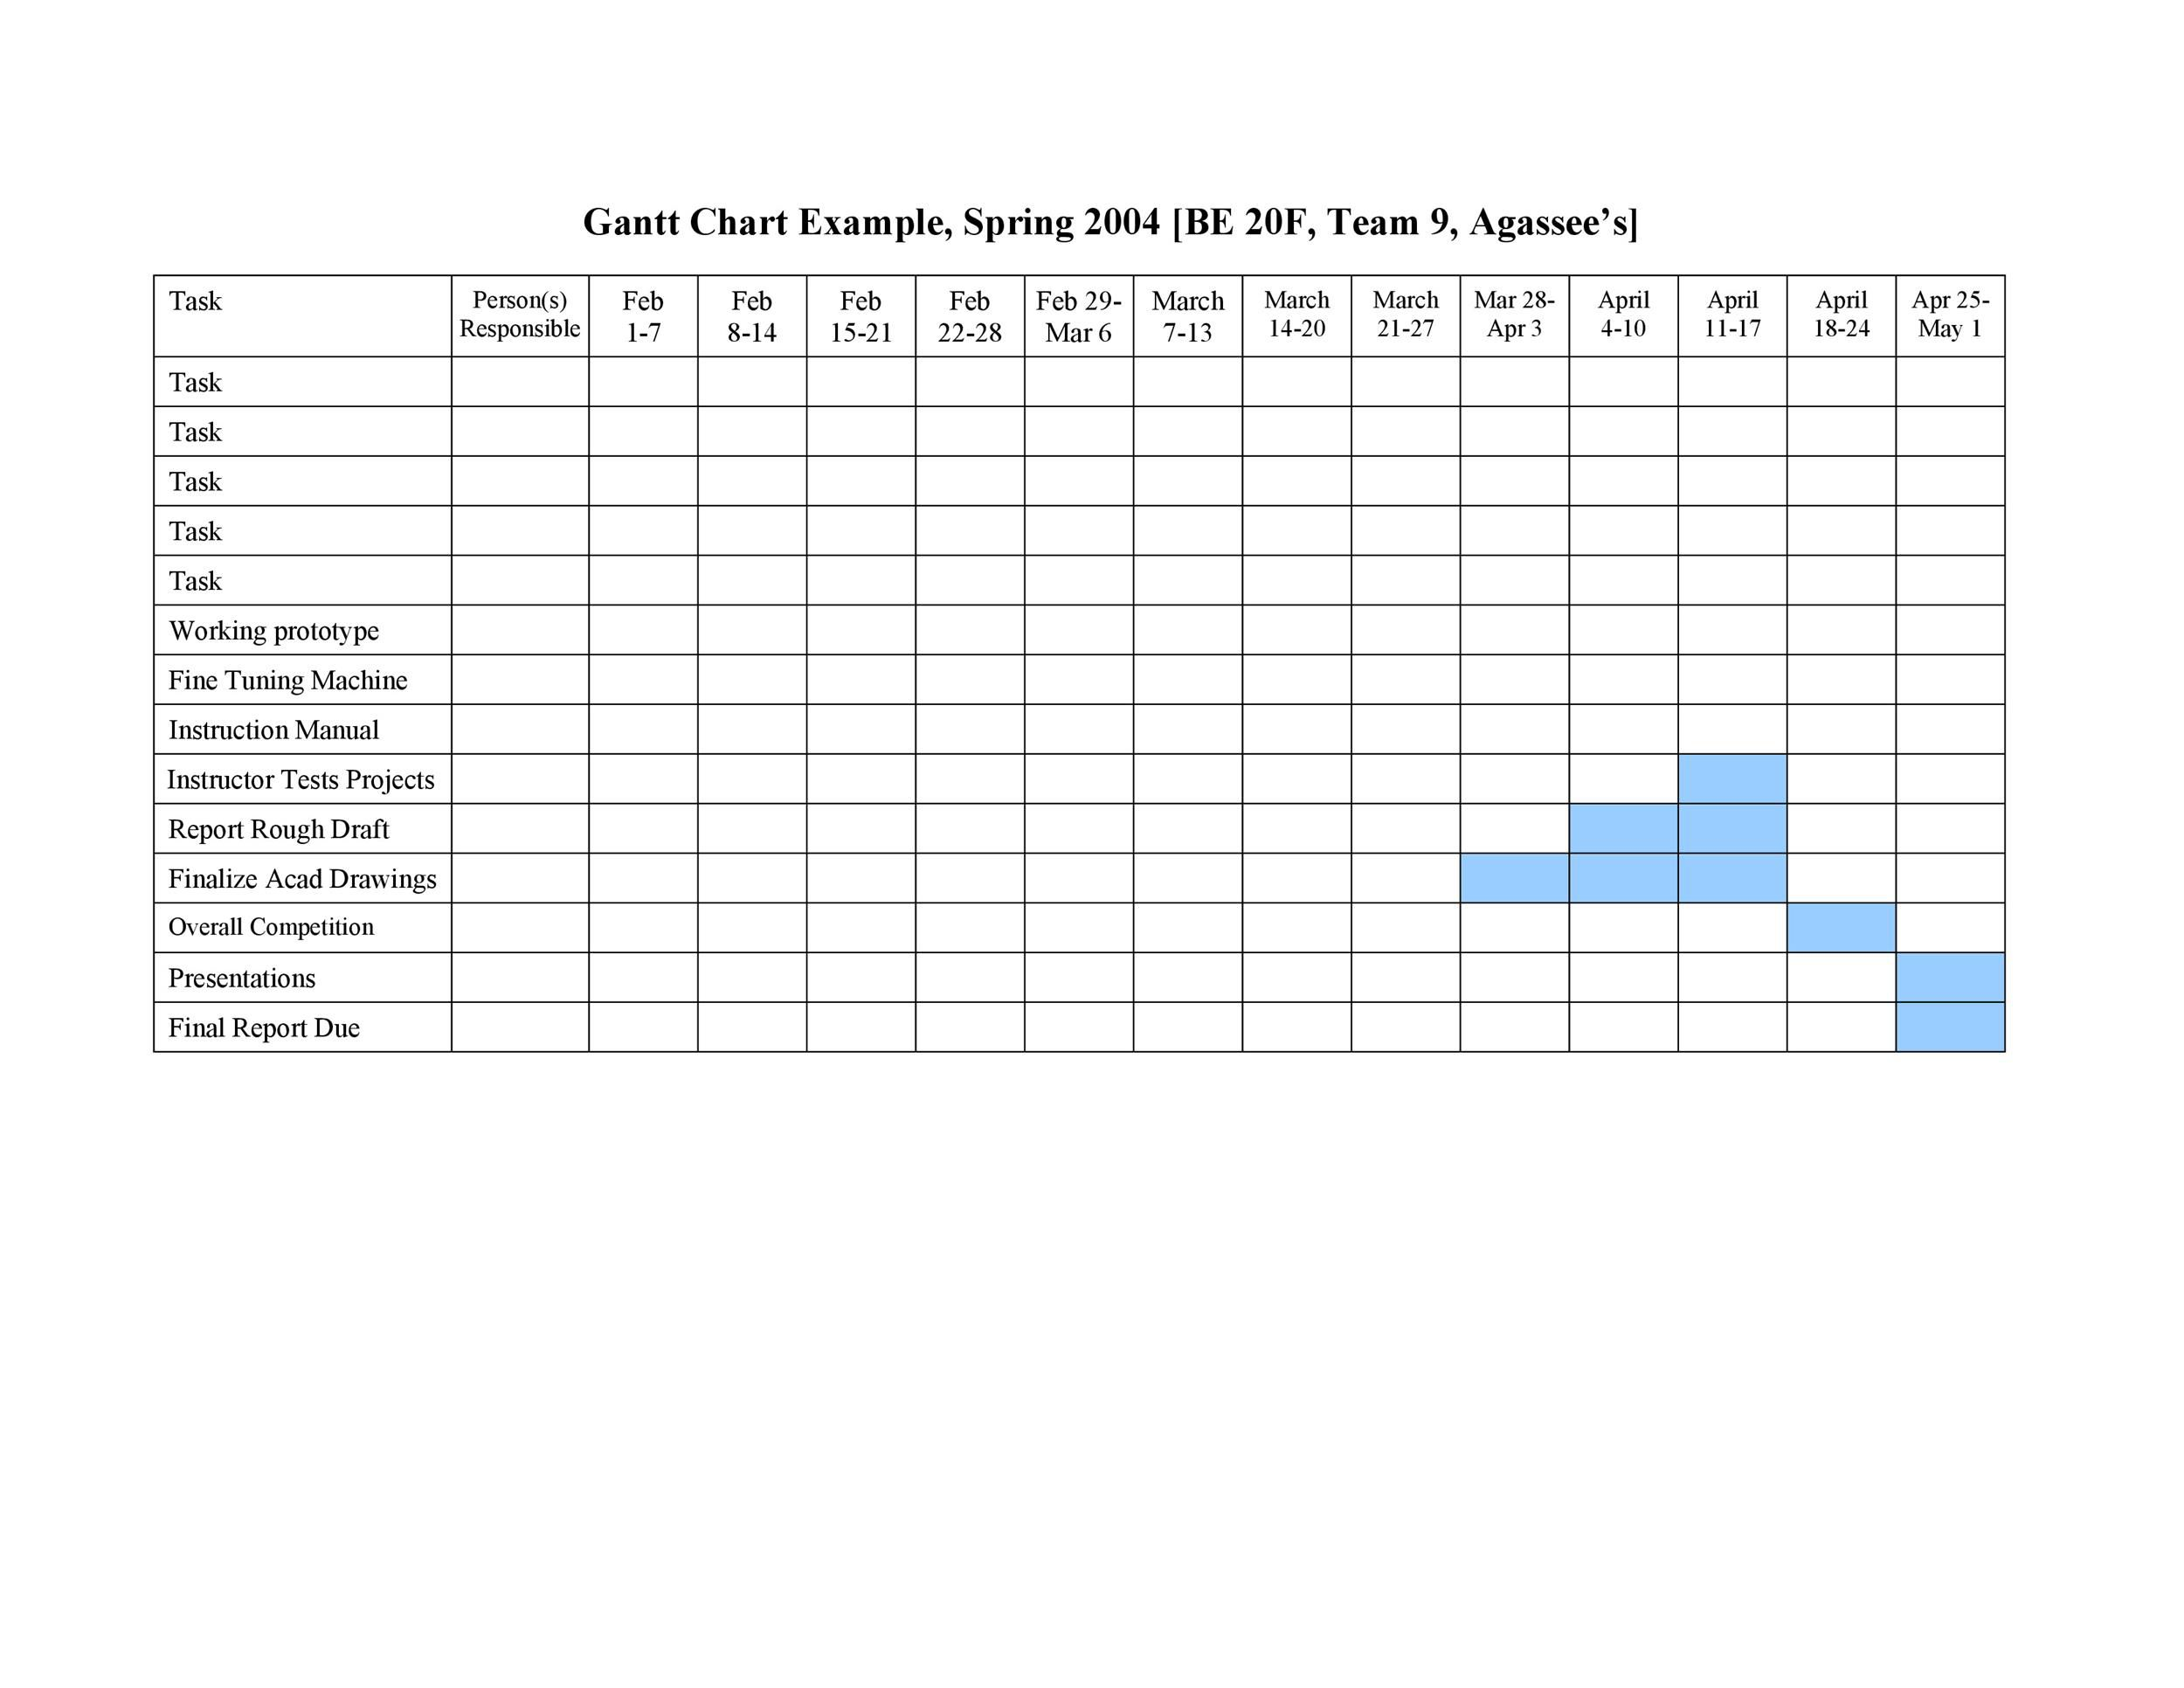 009 Archaicawful Project Gantt Chart Template Excel Free High Def Full